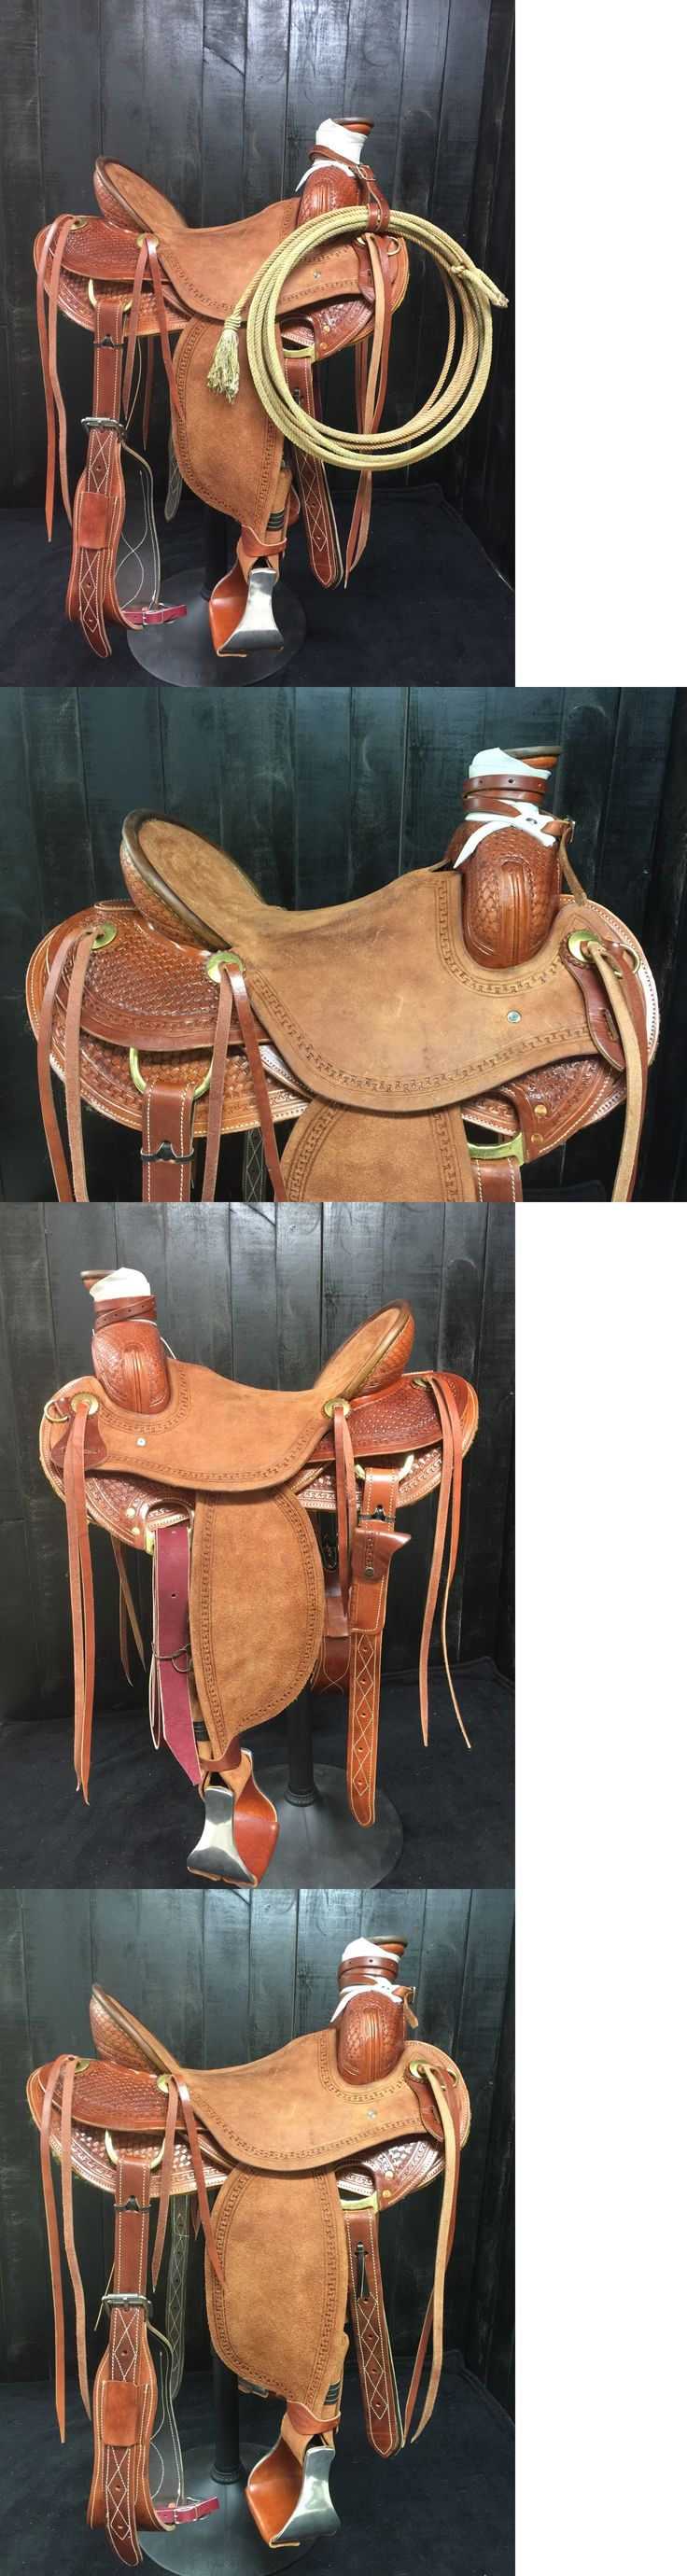 Saddles 47291: Custom Association Roping Saddle - Ranch Wade Training - Made For You!! -> BUY IT NOW ONLY: $1299.99 on eBay!